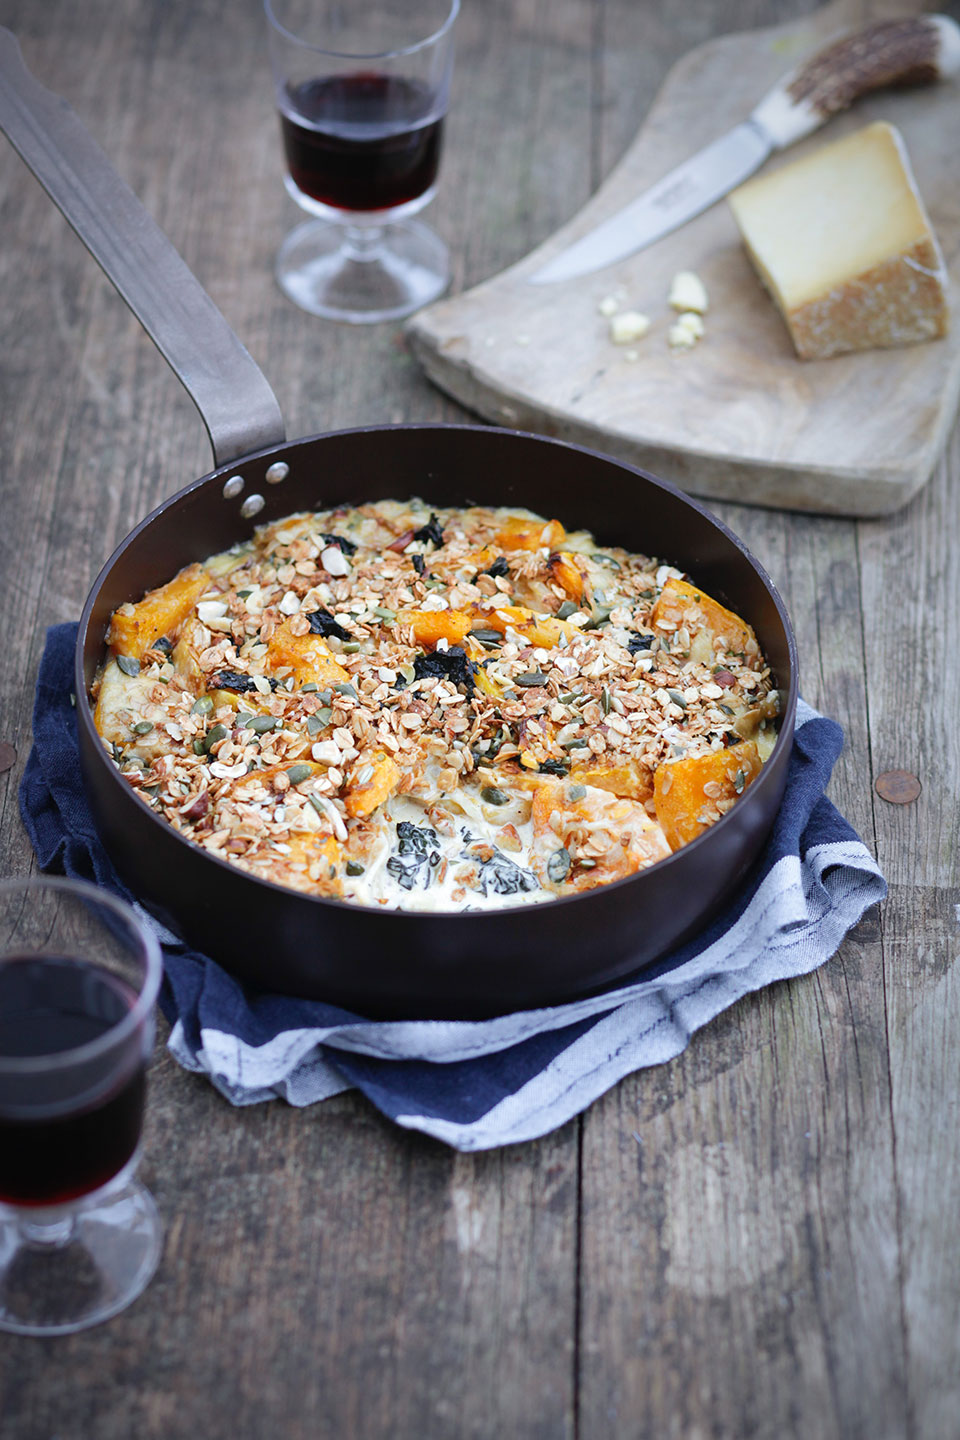 BUTTERNUT SQUASH, ADLESTROP CHEESE AND CAVALO NERO CRUMBLE